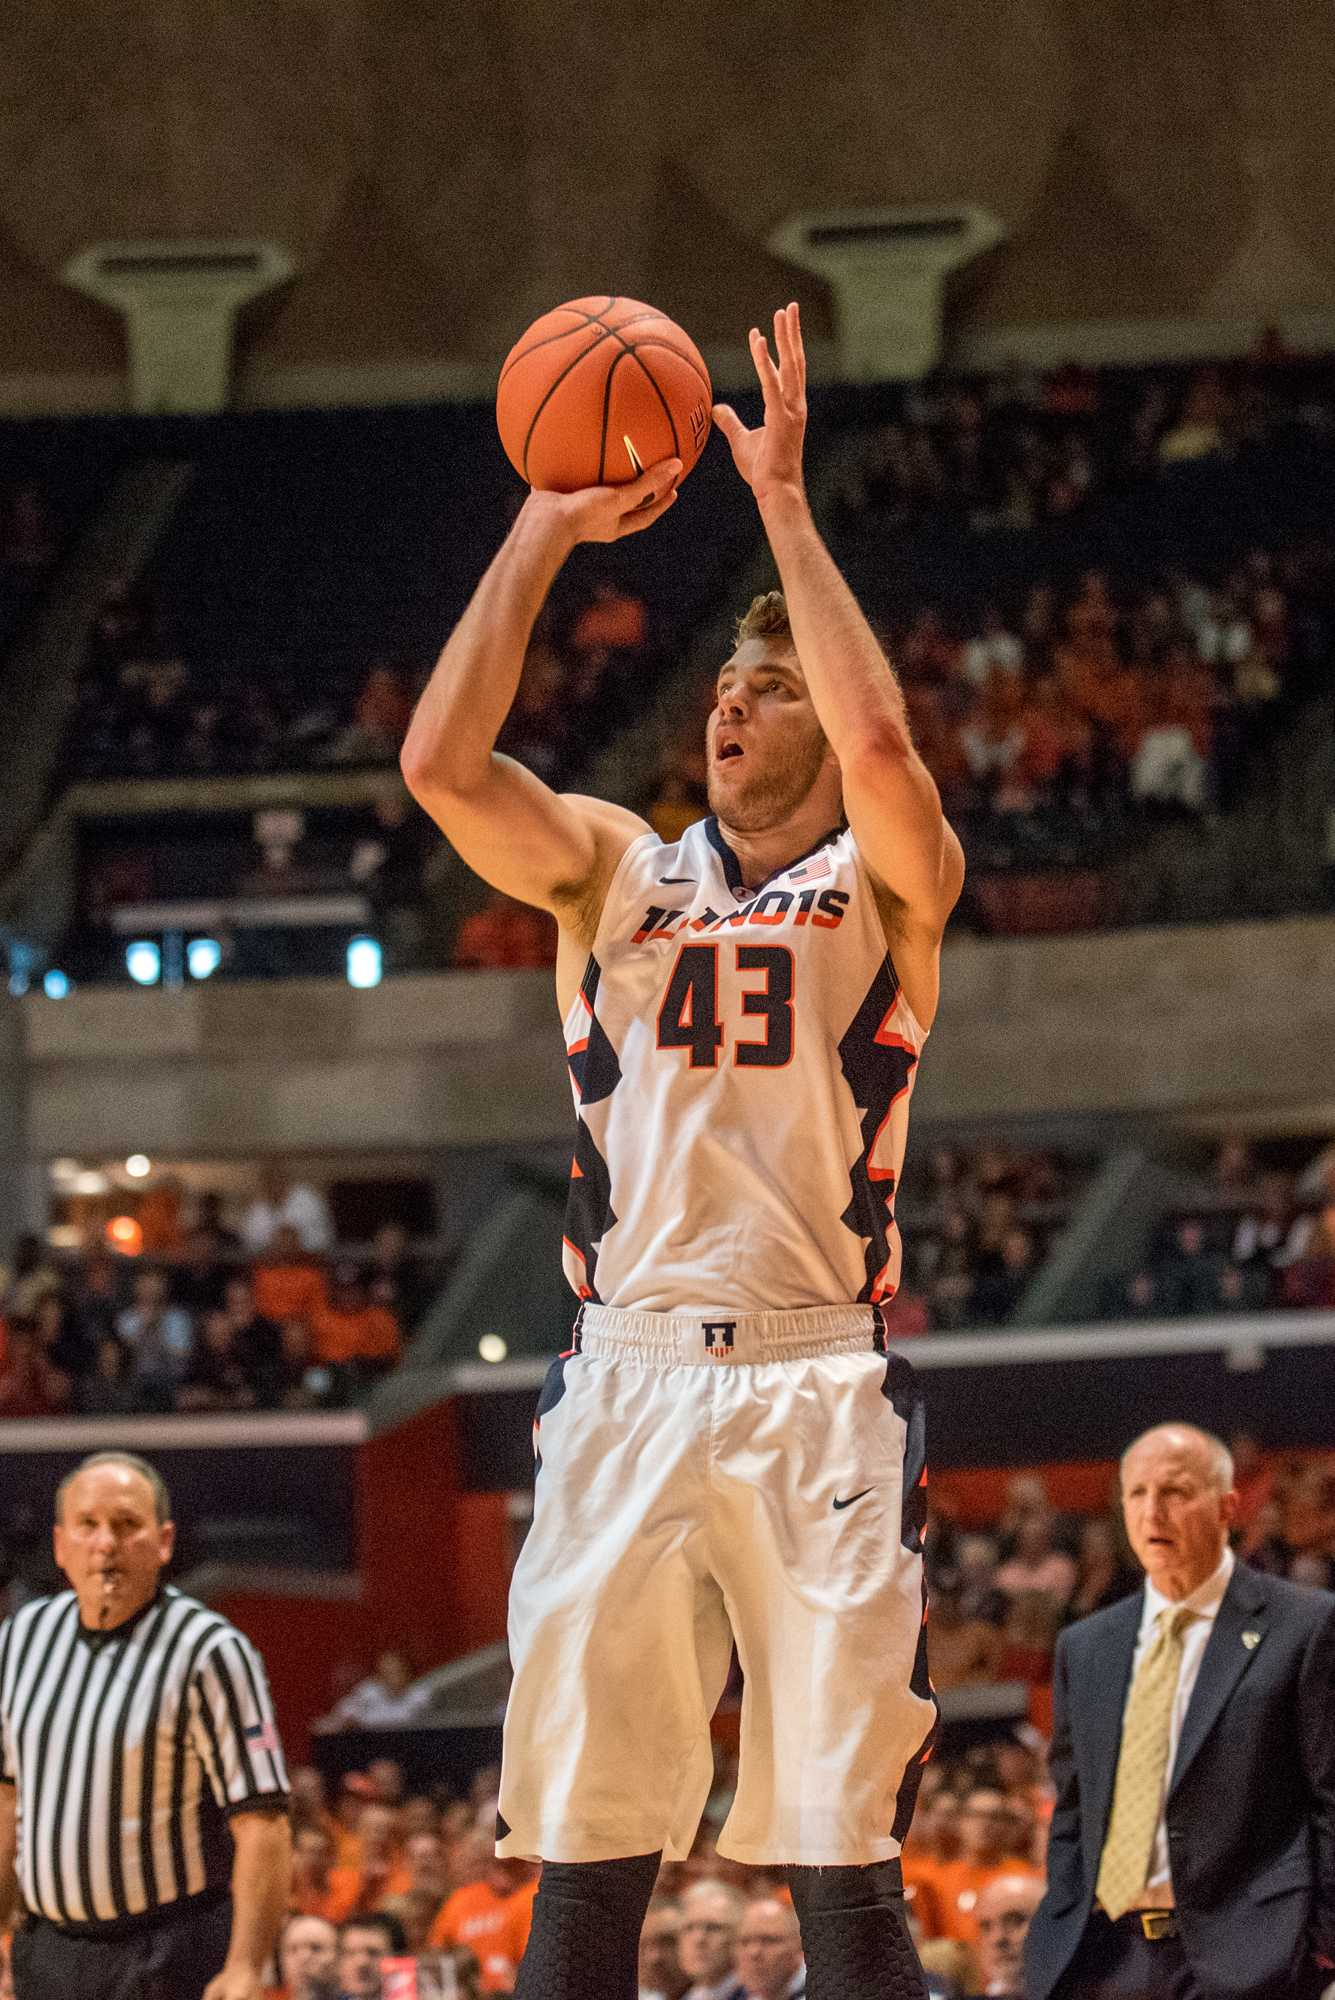 Forward Michael Finke takes a three point shot during the game against Western Carolina at State Farm Center on Saturday.